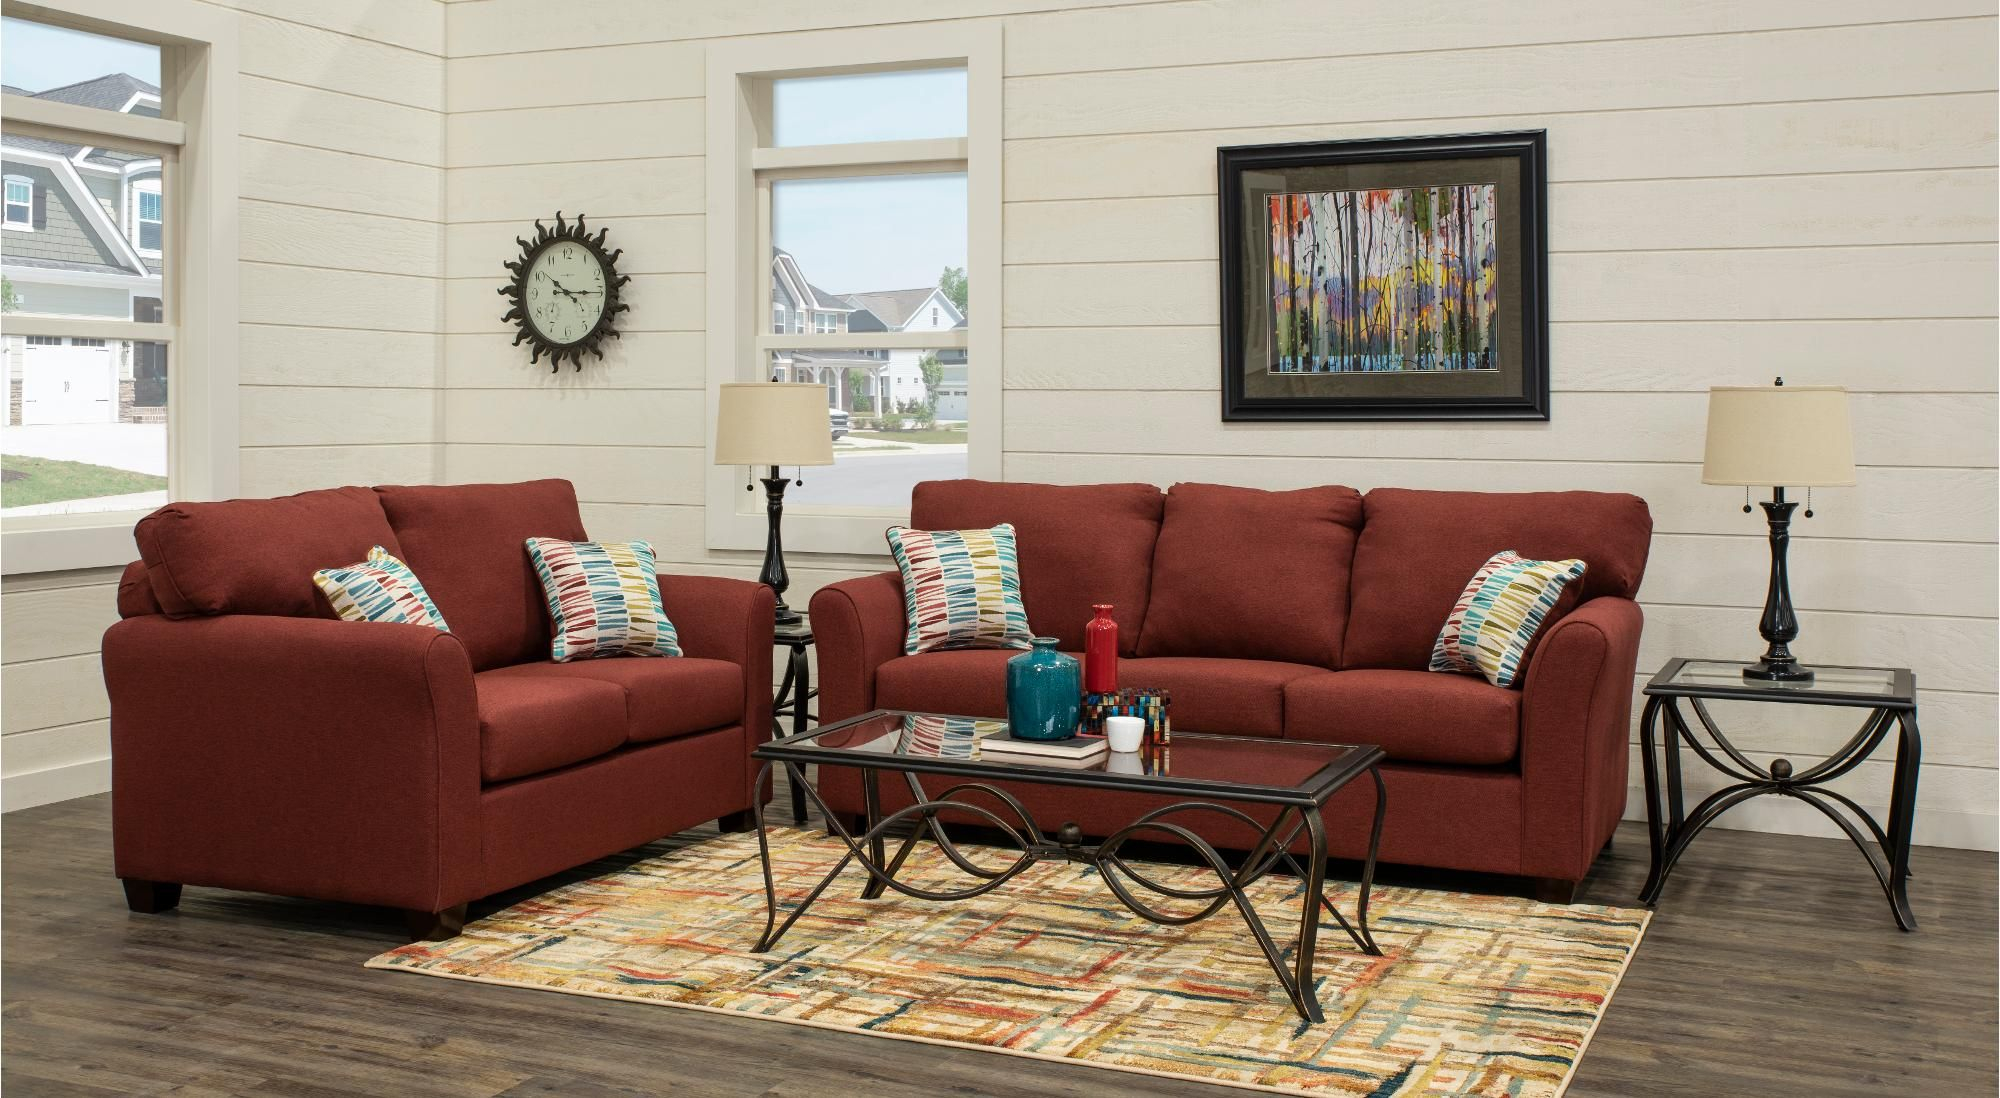 Contemporary Ru Red 7 Piece Living Room Set Wall St Living within 15 Some of the Coolest Designs of How to Craft 7 Piece Living Room Sets